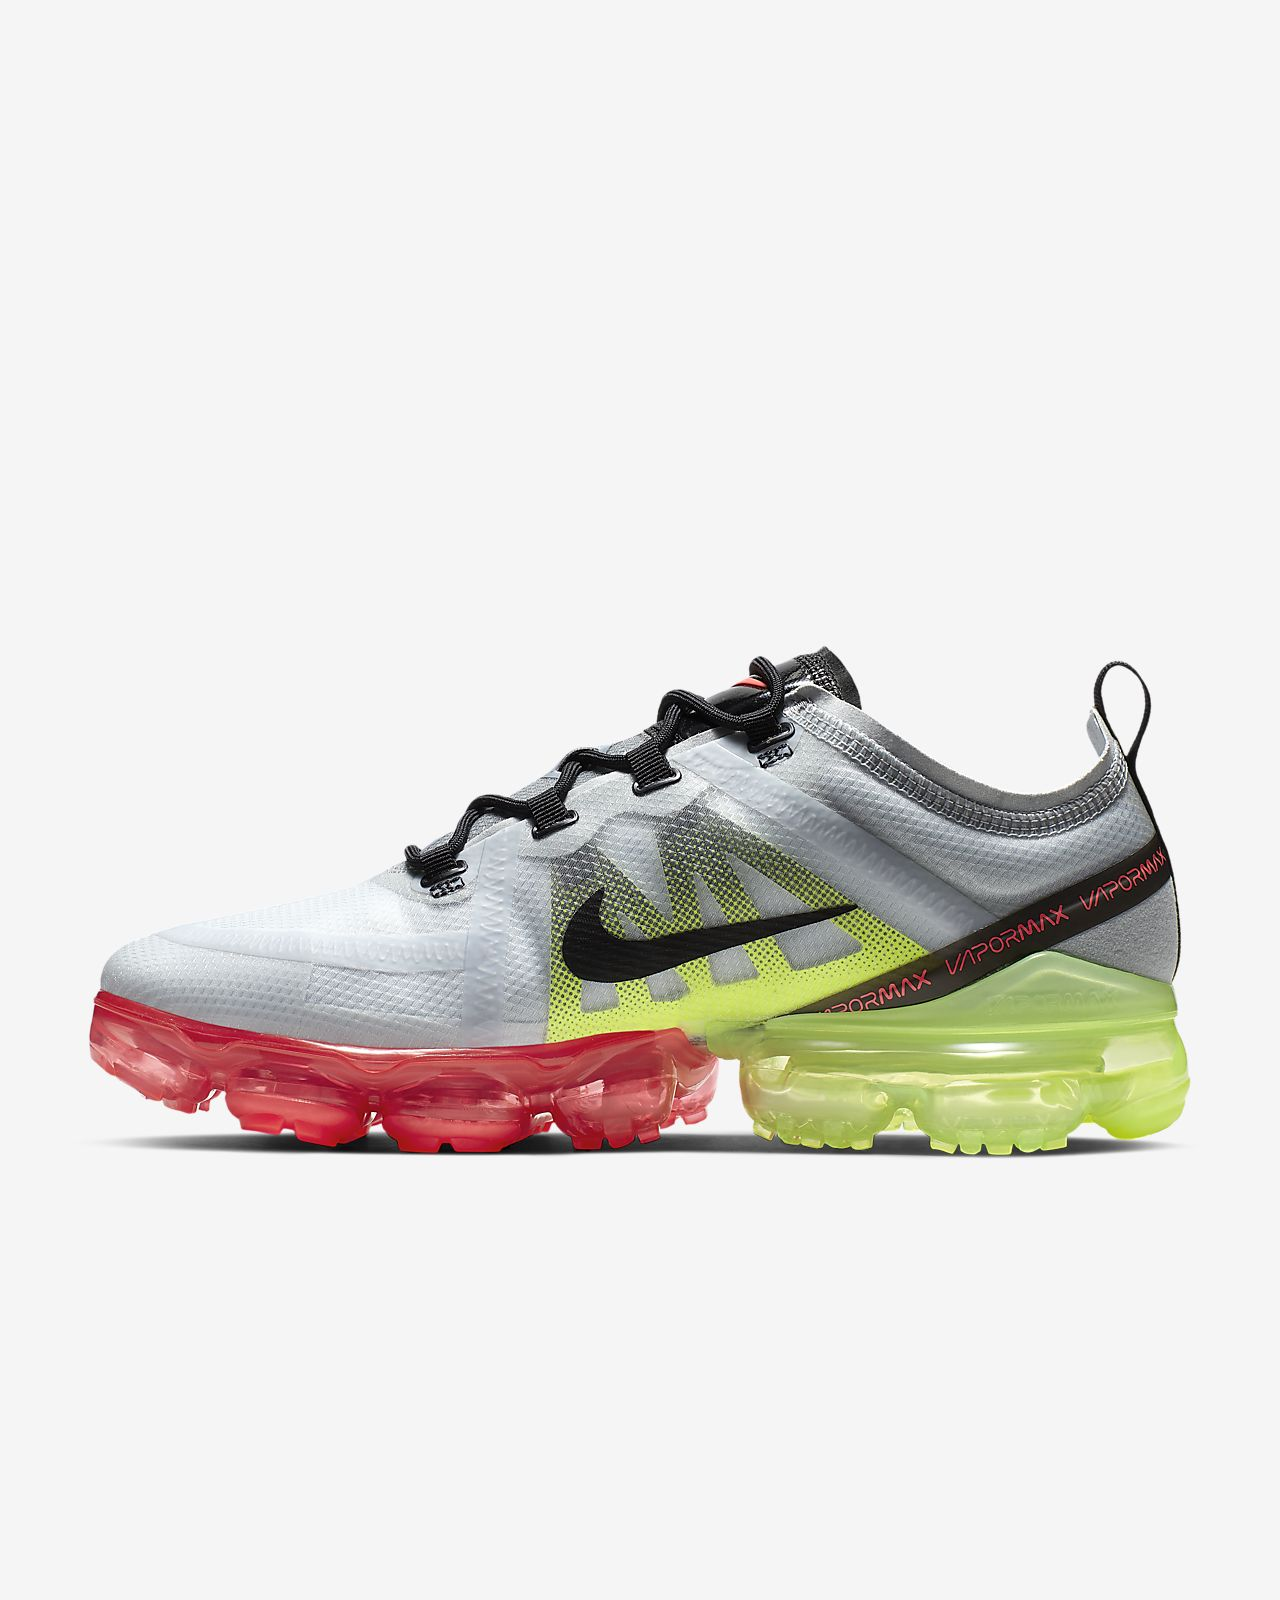 outlet store b8532 b51ab ... Chaussure Nike Air VaporMax 2019